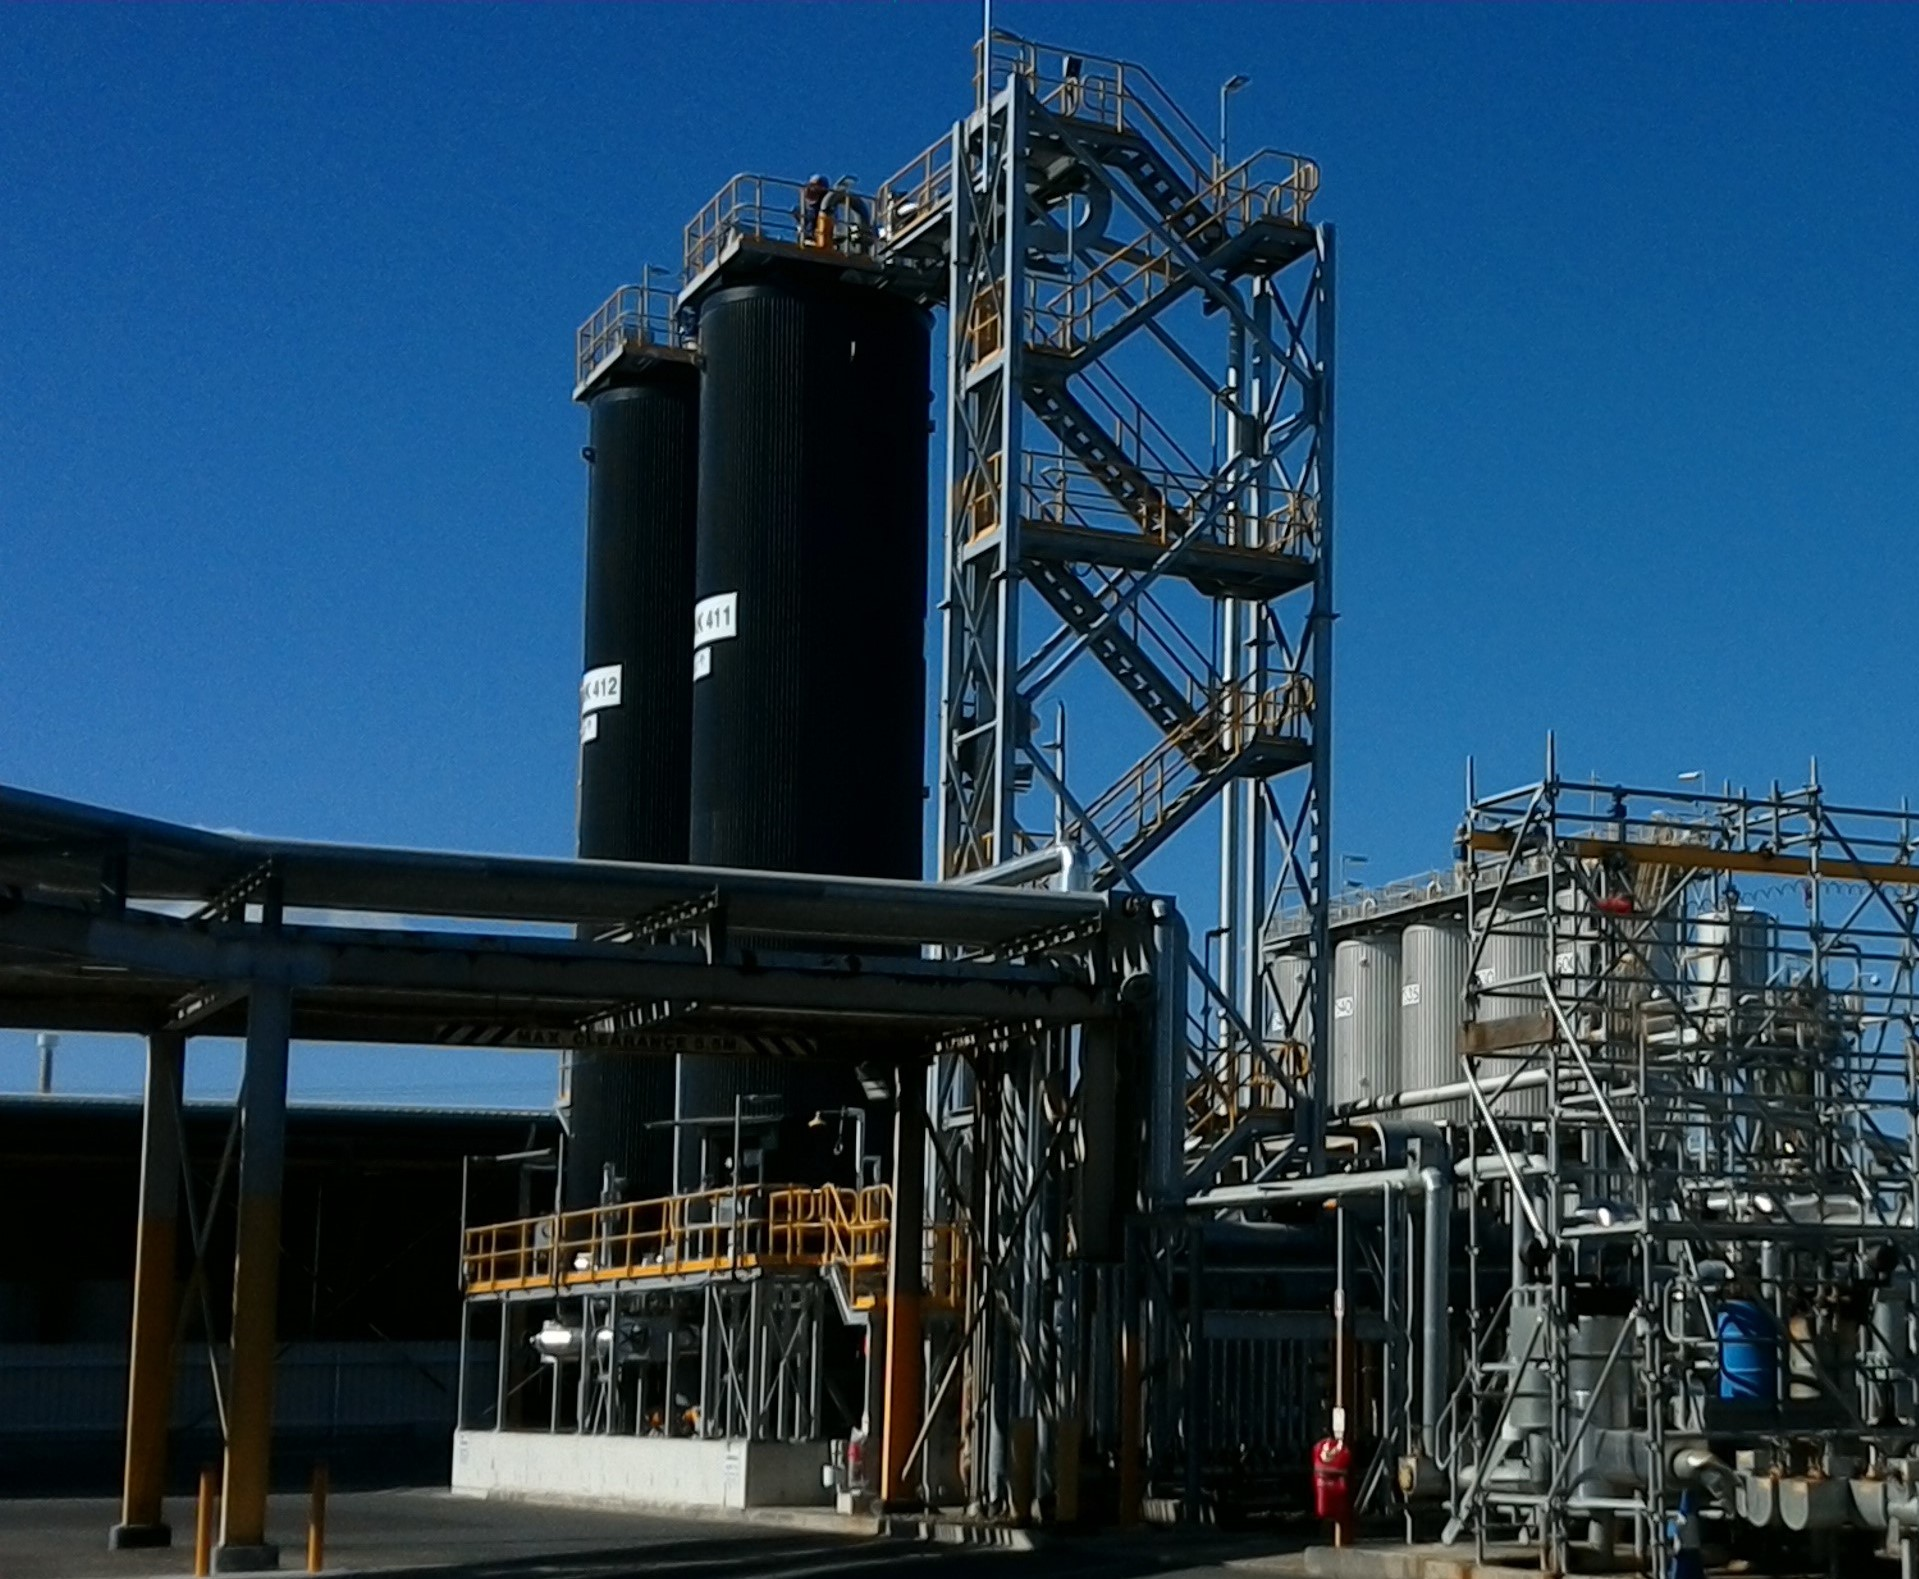 Puma Bitumen, with funding from Tyre Stewardship Australia, expands manufacturing capacity